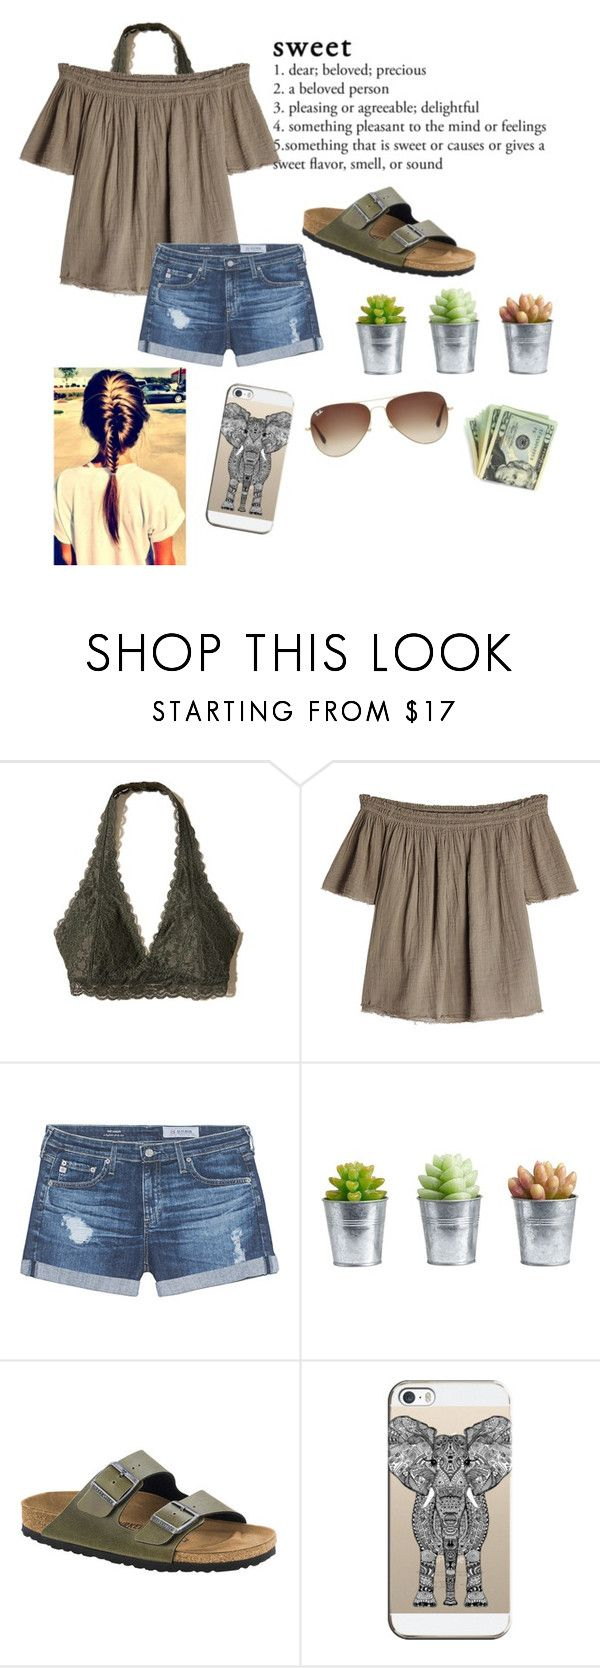 """Contest entry!!"" by emily-wollan ❤ liked on Polyvore featuring Hollister Co., Velvet, AG Adriano Goldschmied, Pottery Barn, Birkenstock, Casetify and Ray-Ban"